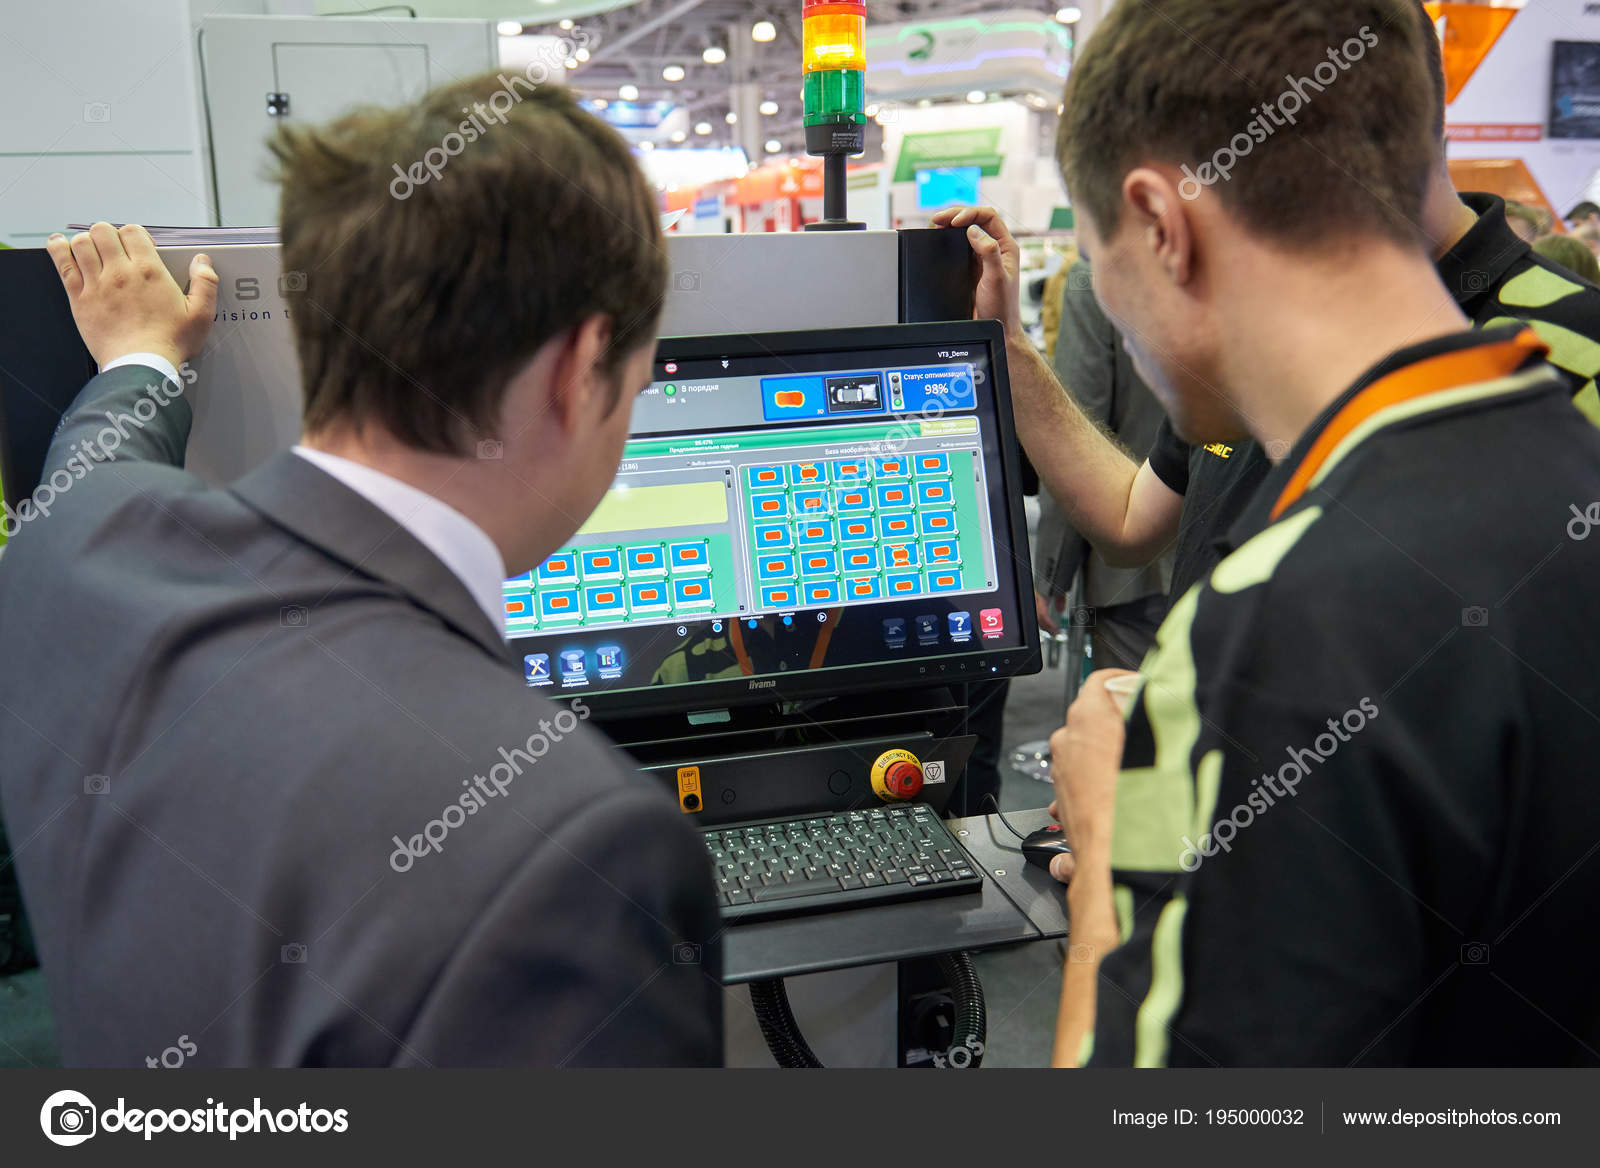 Moscow Apr 2018 Engineer Demonstrates Monitor How Work Machine Printed Circuit Board Manufacturing Equipment 19 On To For Manufacture Of Boards Computers Men At